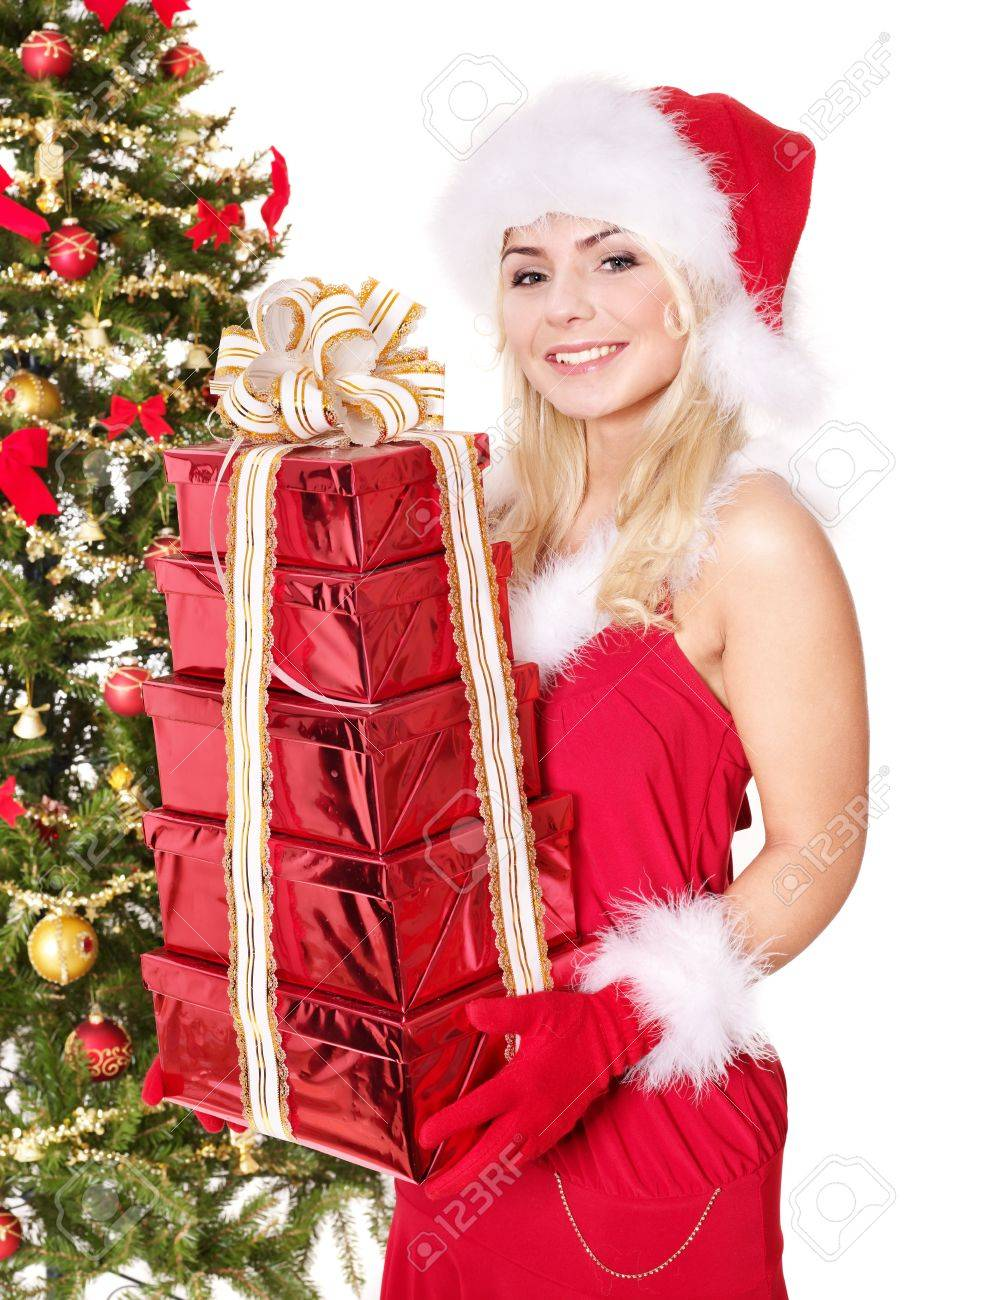 Girl in santa hat holding stack gift box near christmas tree.  Isolated. Stock Photo - 11439368